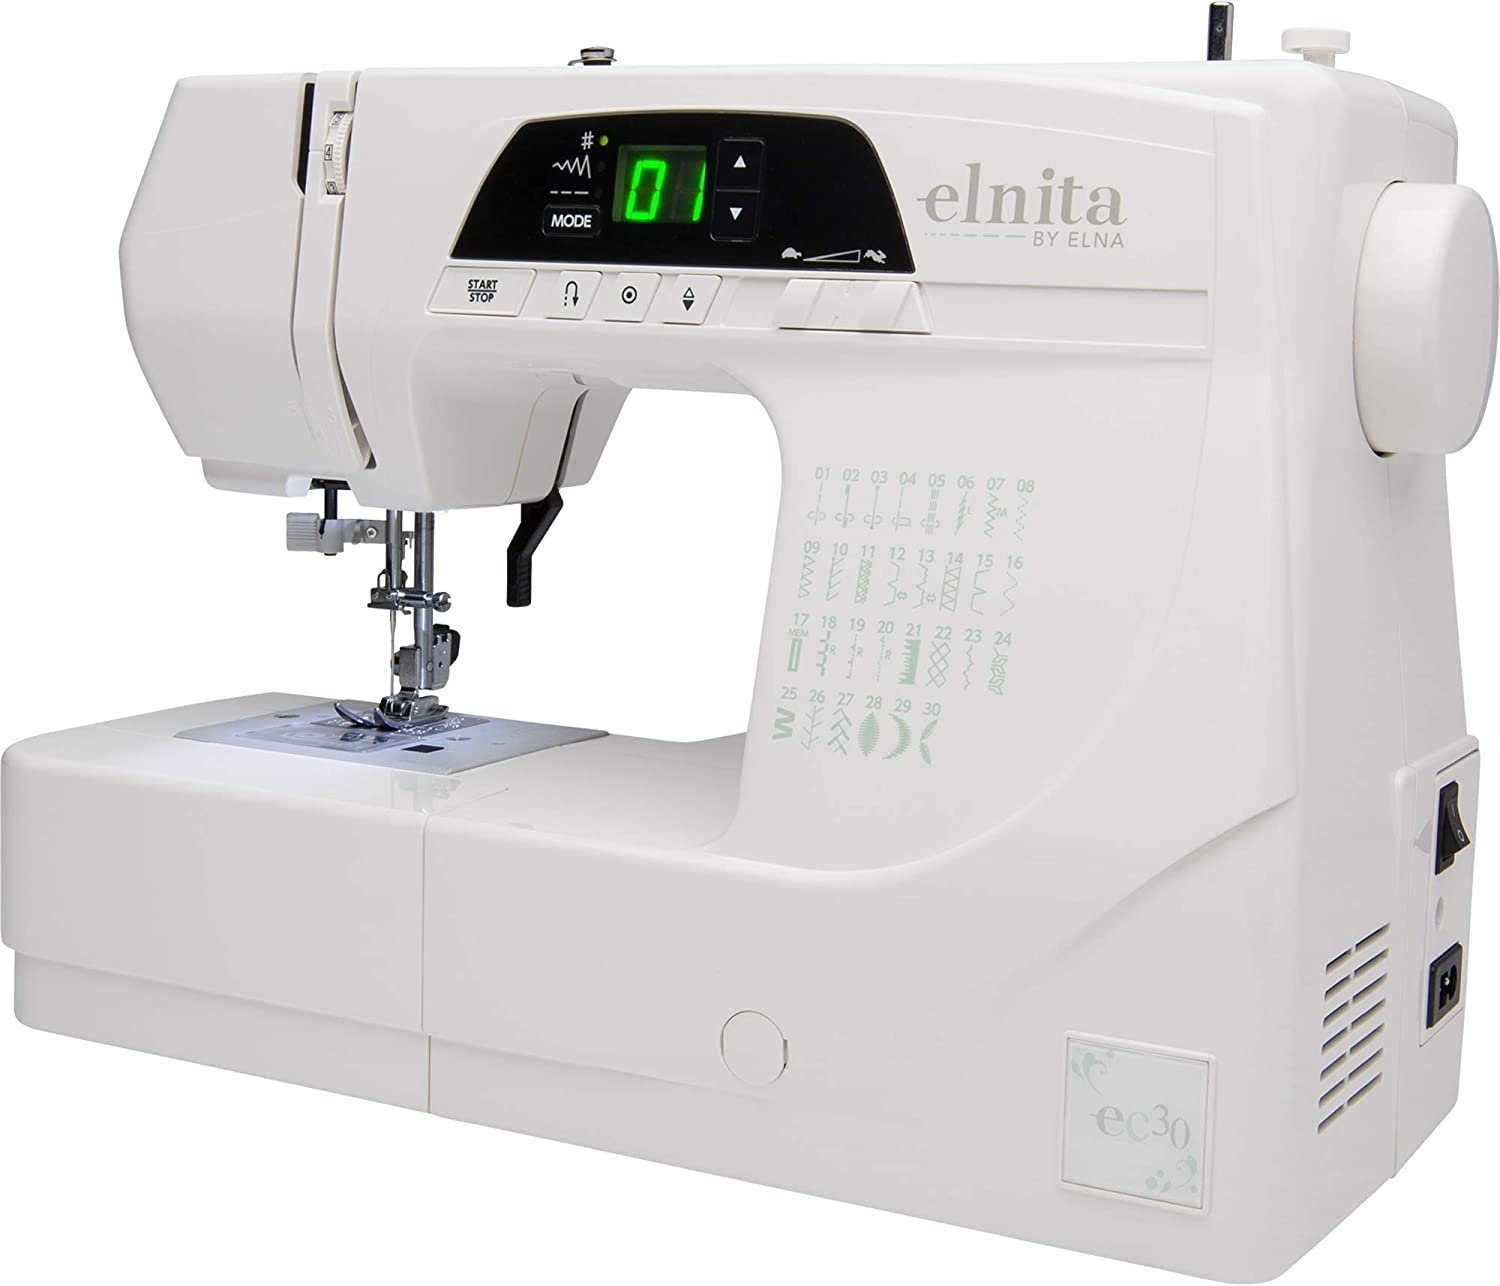 Elnita EC30 Computerized Sewing Machine with 30 Stitches, LED ...